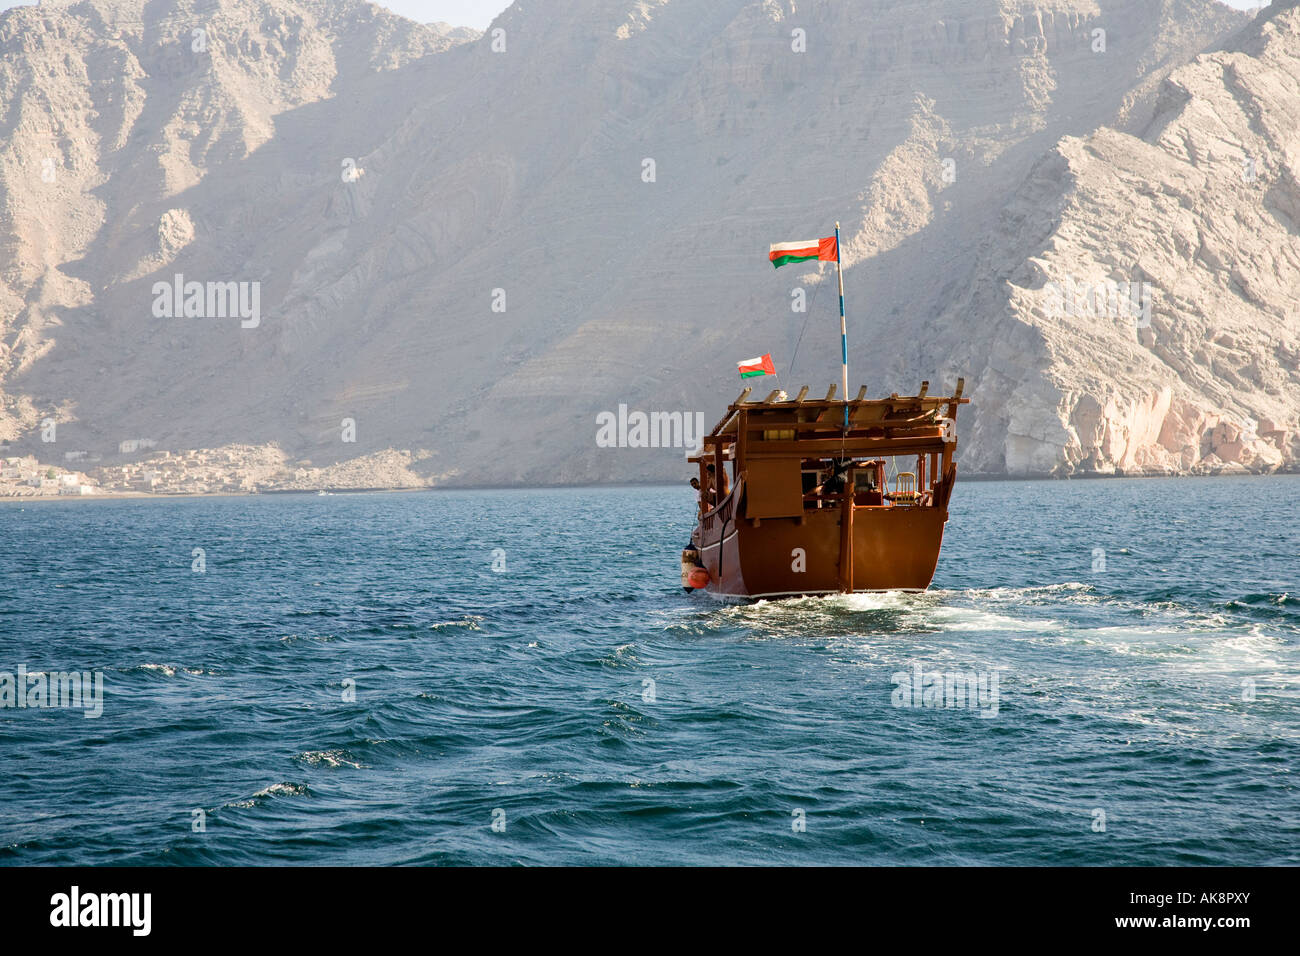 Arab Tourist charter boat at sea, Oman Dolphin Watching & coastal cruise, an Arabian Dhow in waters off the - Stock Image